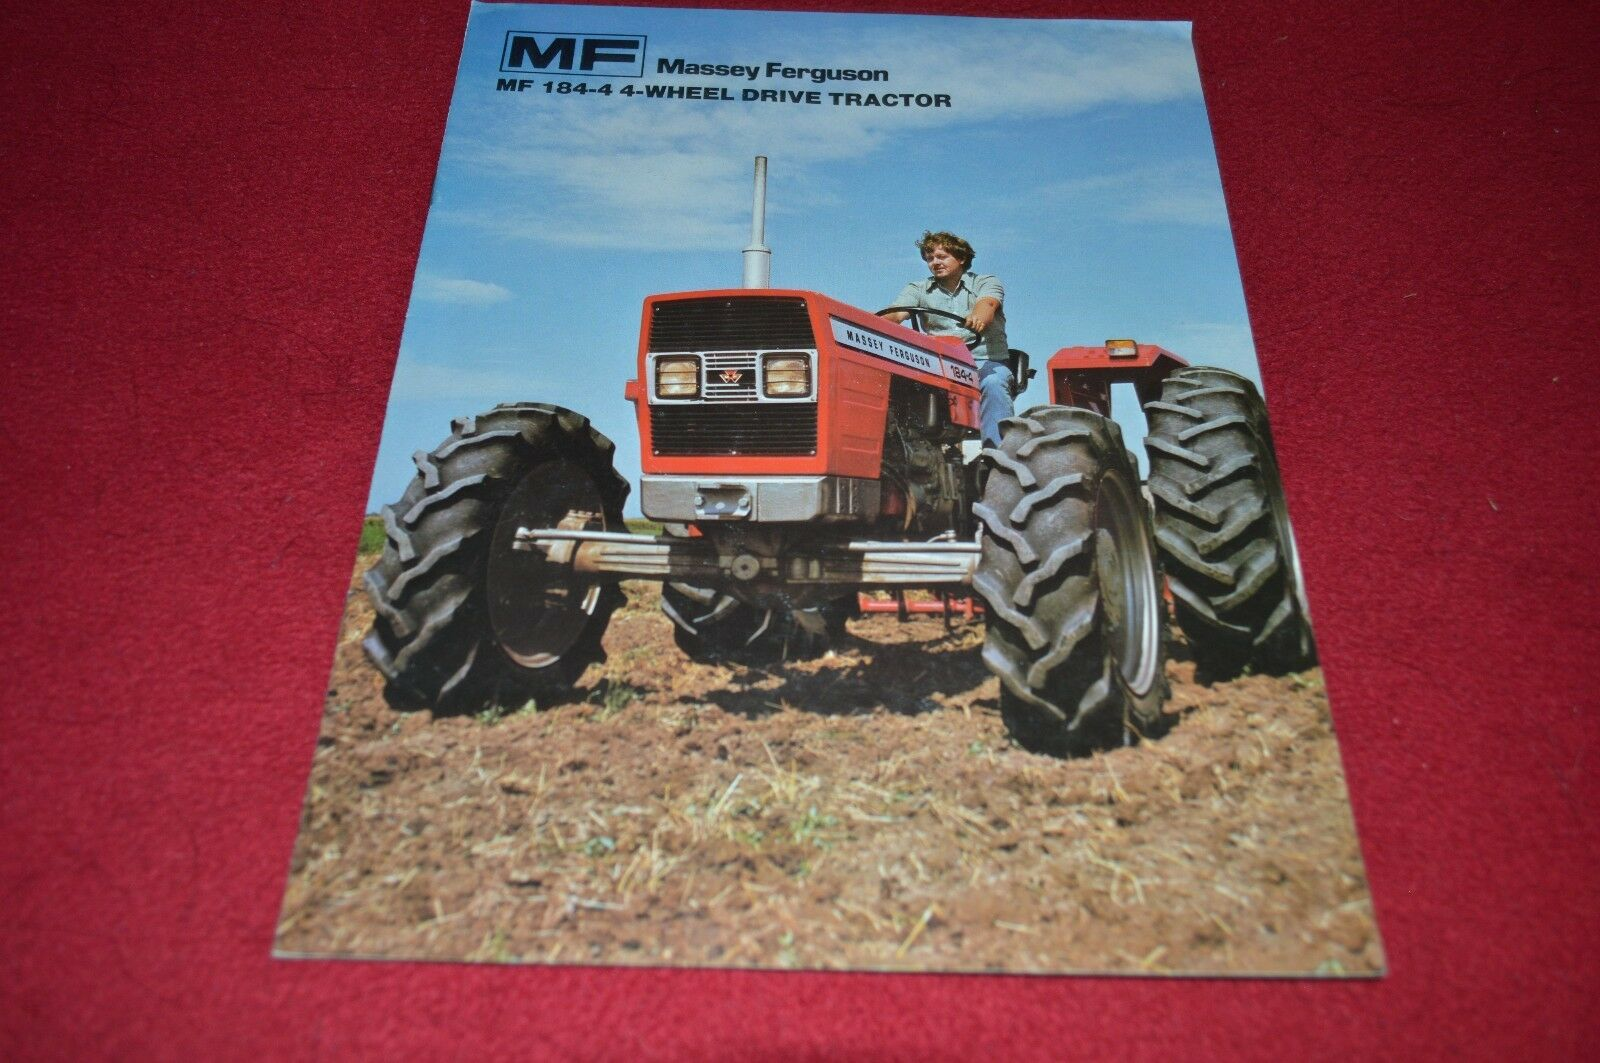 Massey Ferguson 184-4 Tractor Dealer's Brochure DCPA5 1 of 1Only 1  available ...